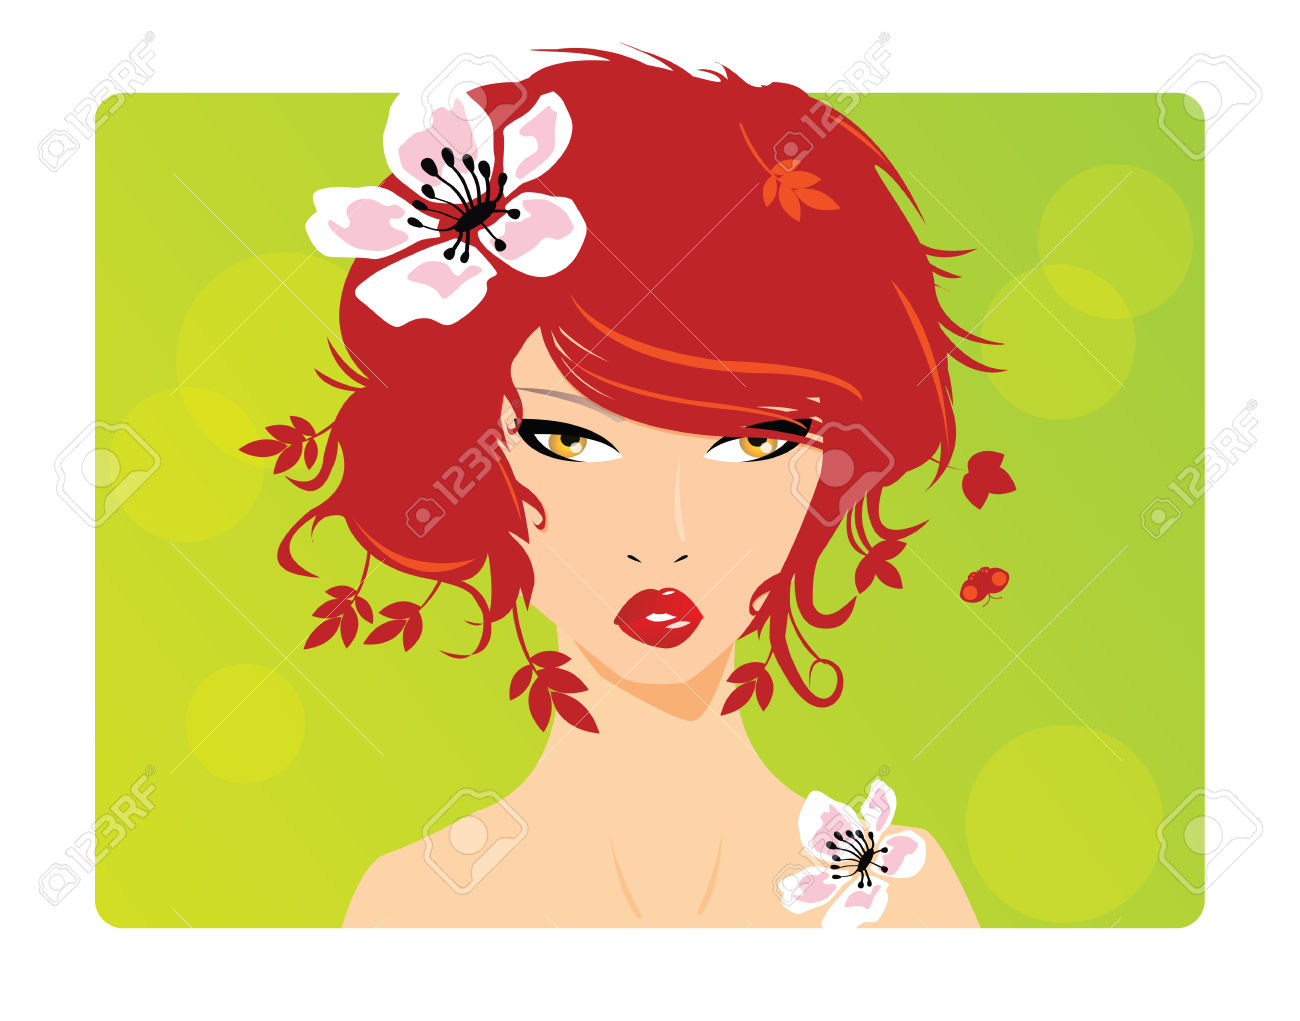 Portrait Of A Beautiful Girl With Red Hair, Ginger, And Flower.